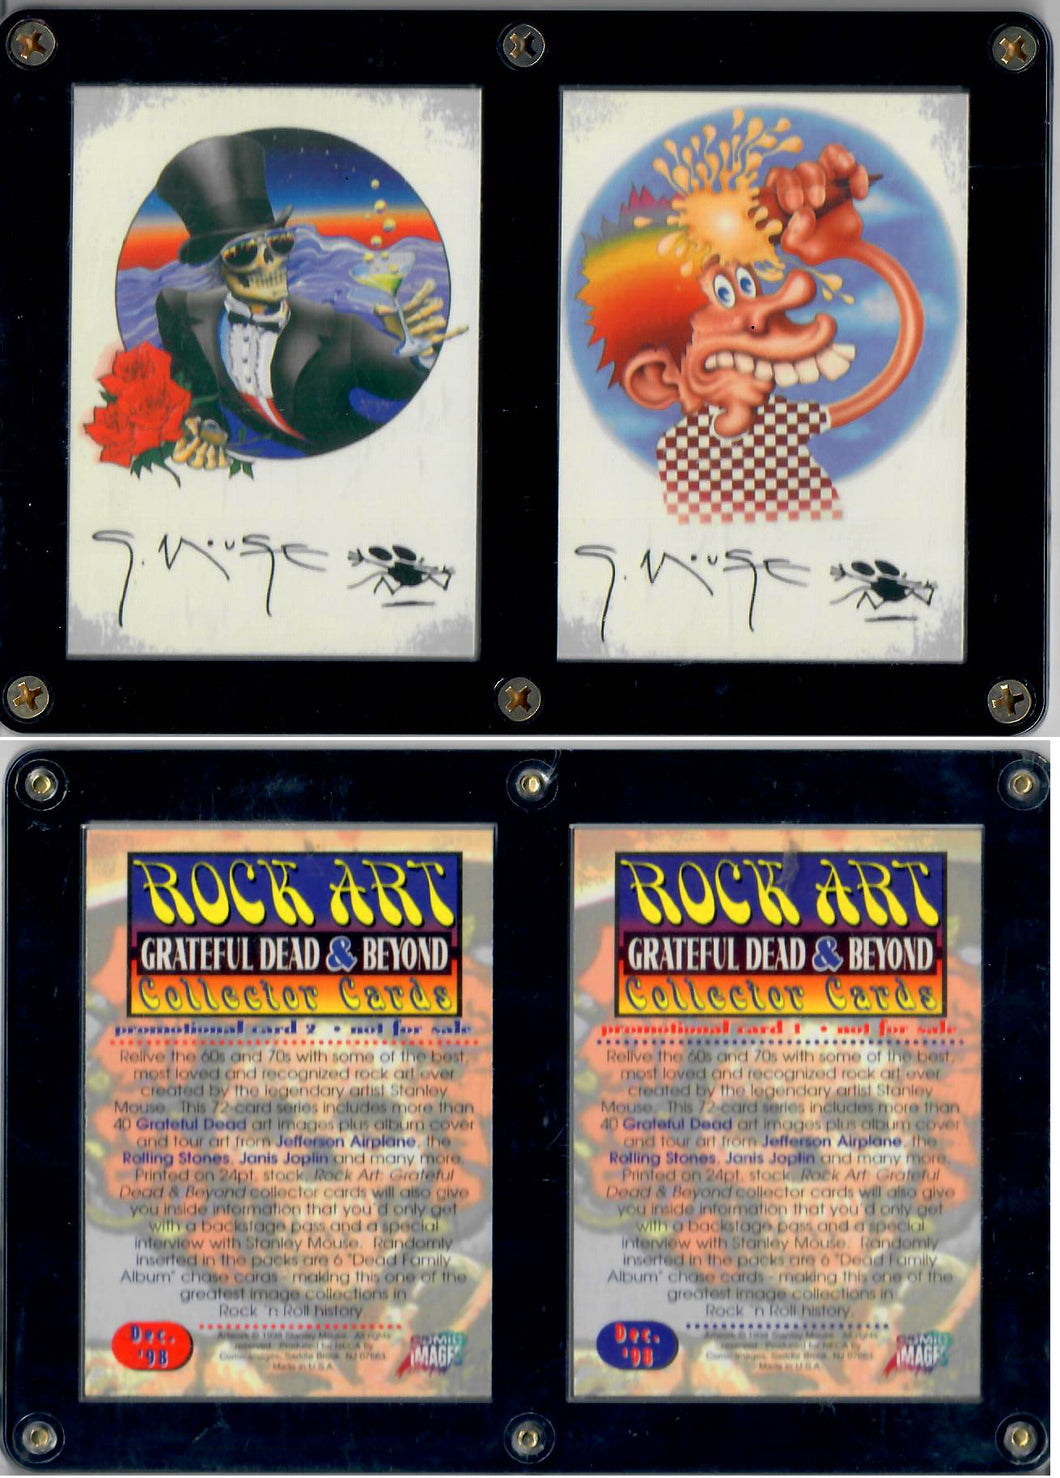 ROCK ART - Grateful Dead & Beyond - 2 Card Promo Set in Case Screwdown Case